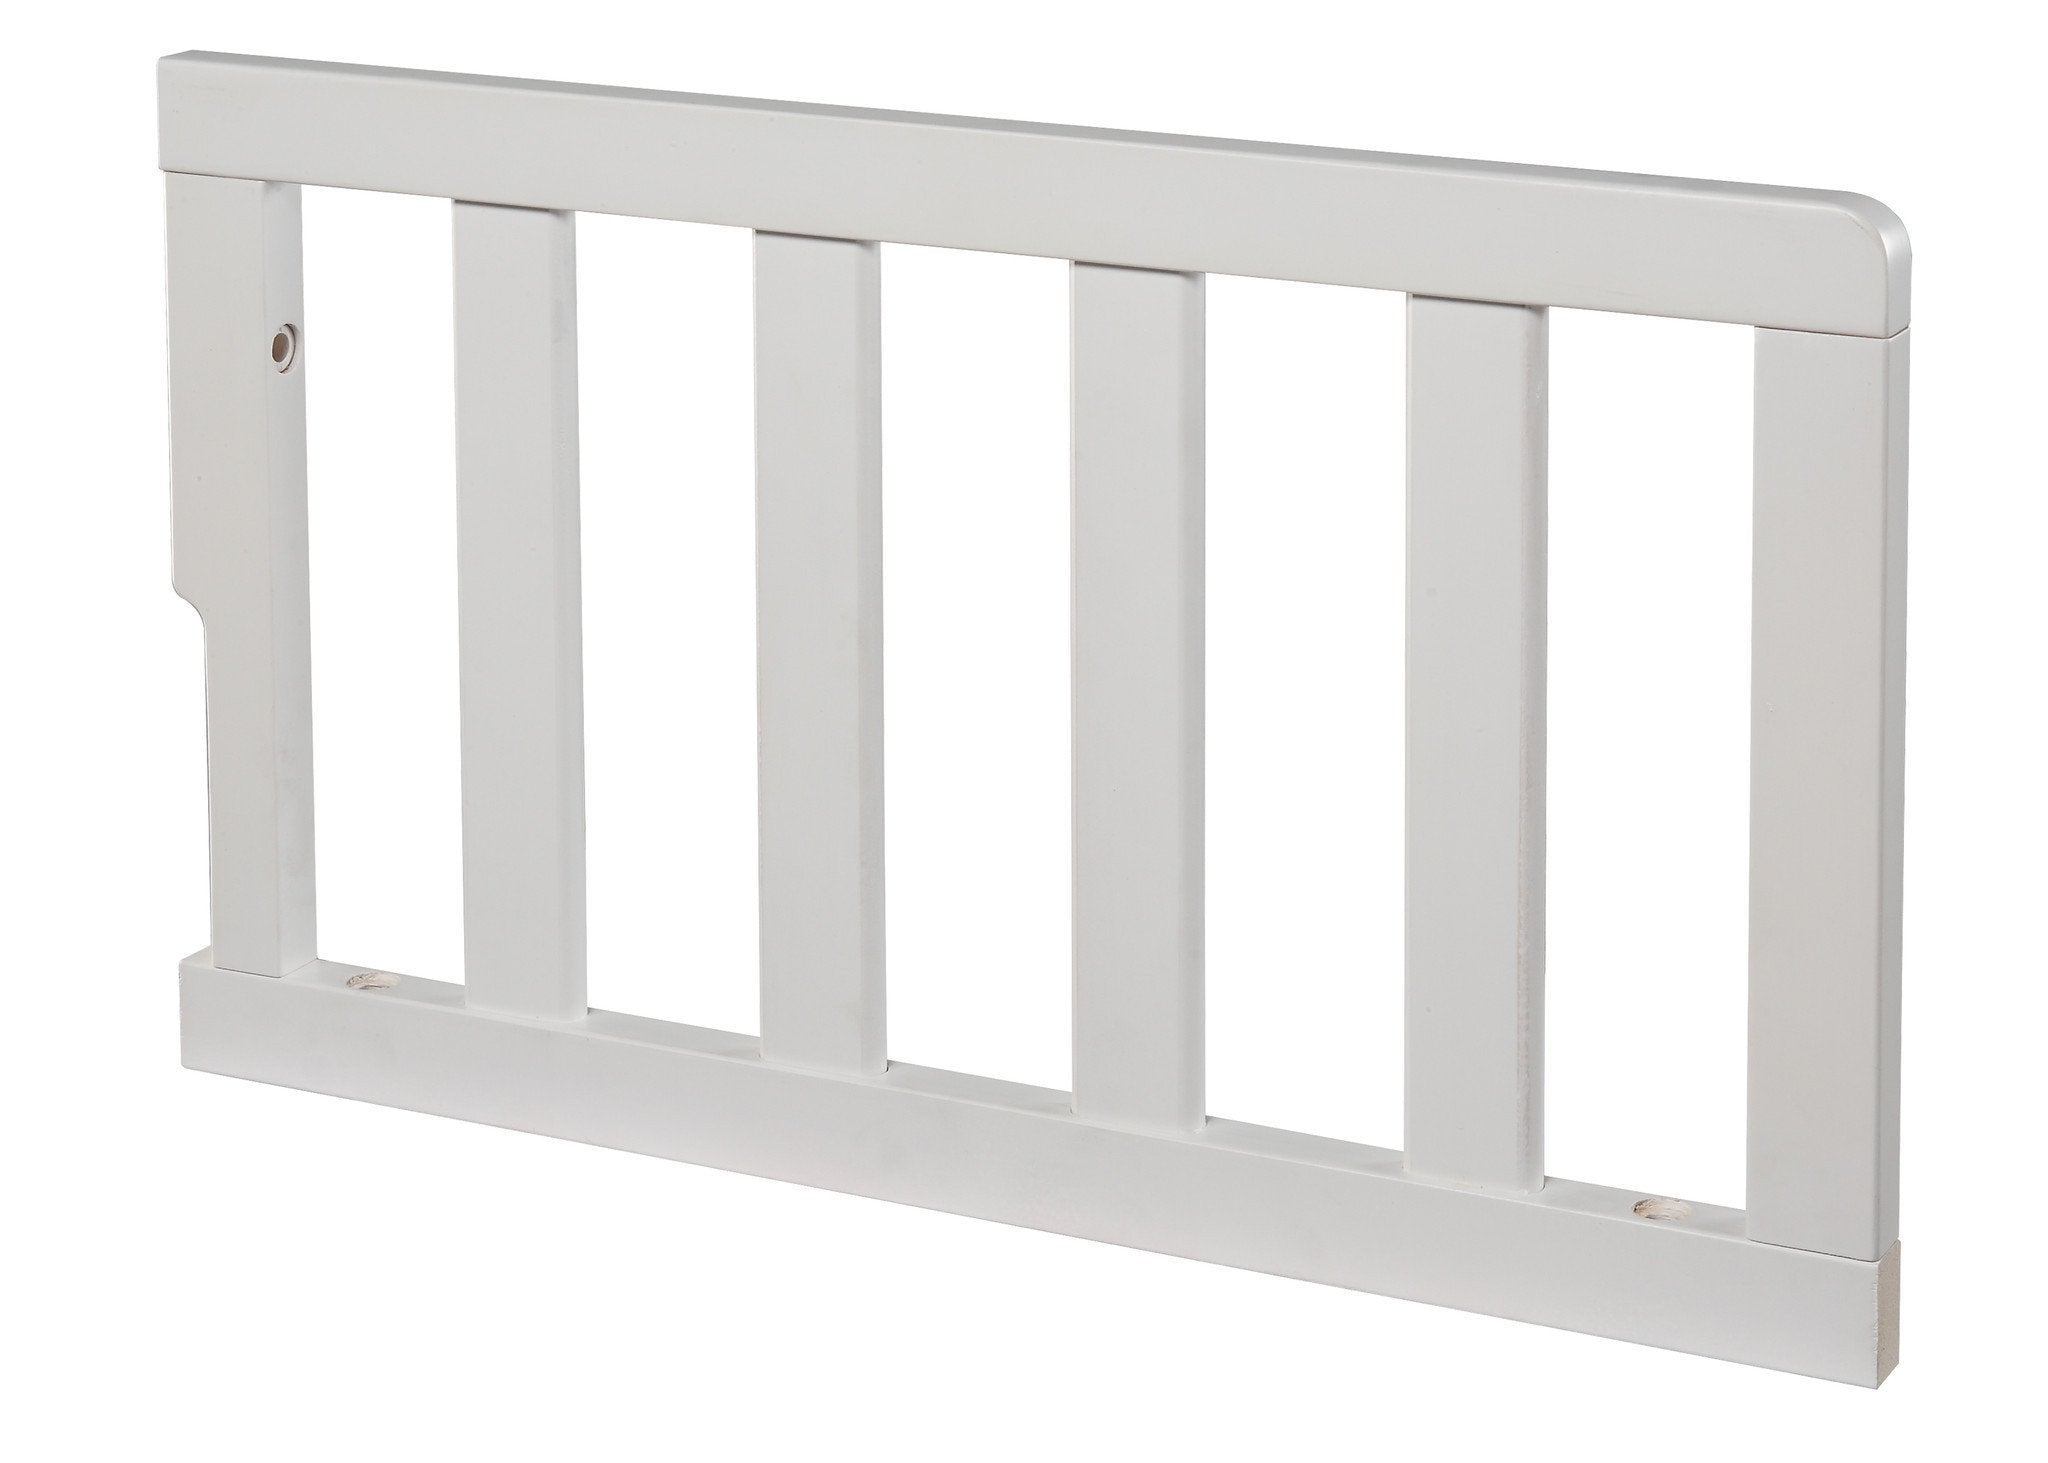 Delta Children White (100) Delta Guardrail a1a